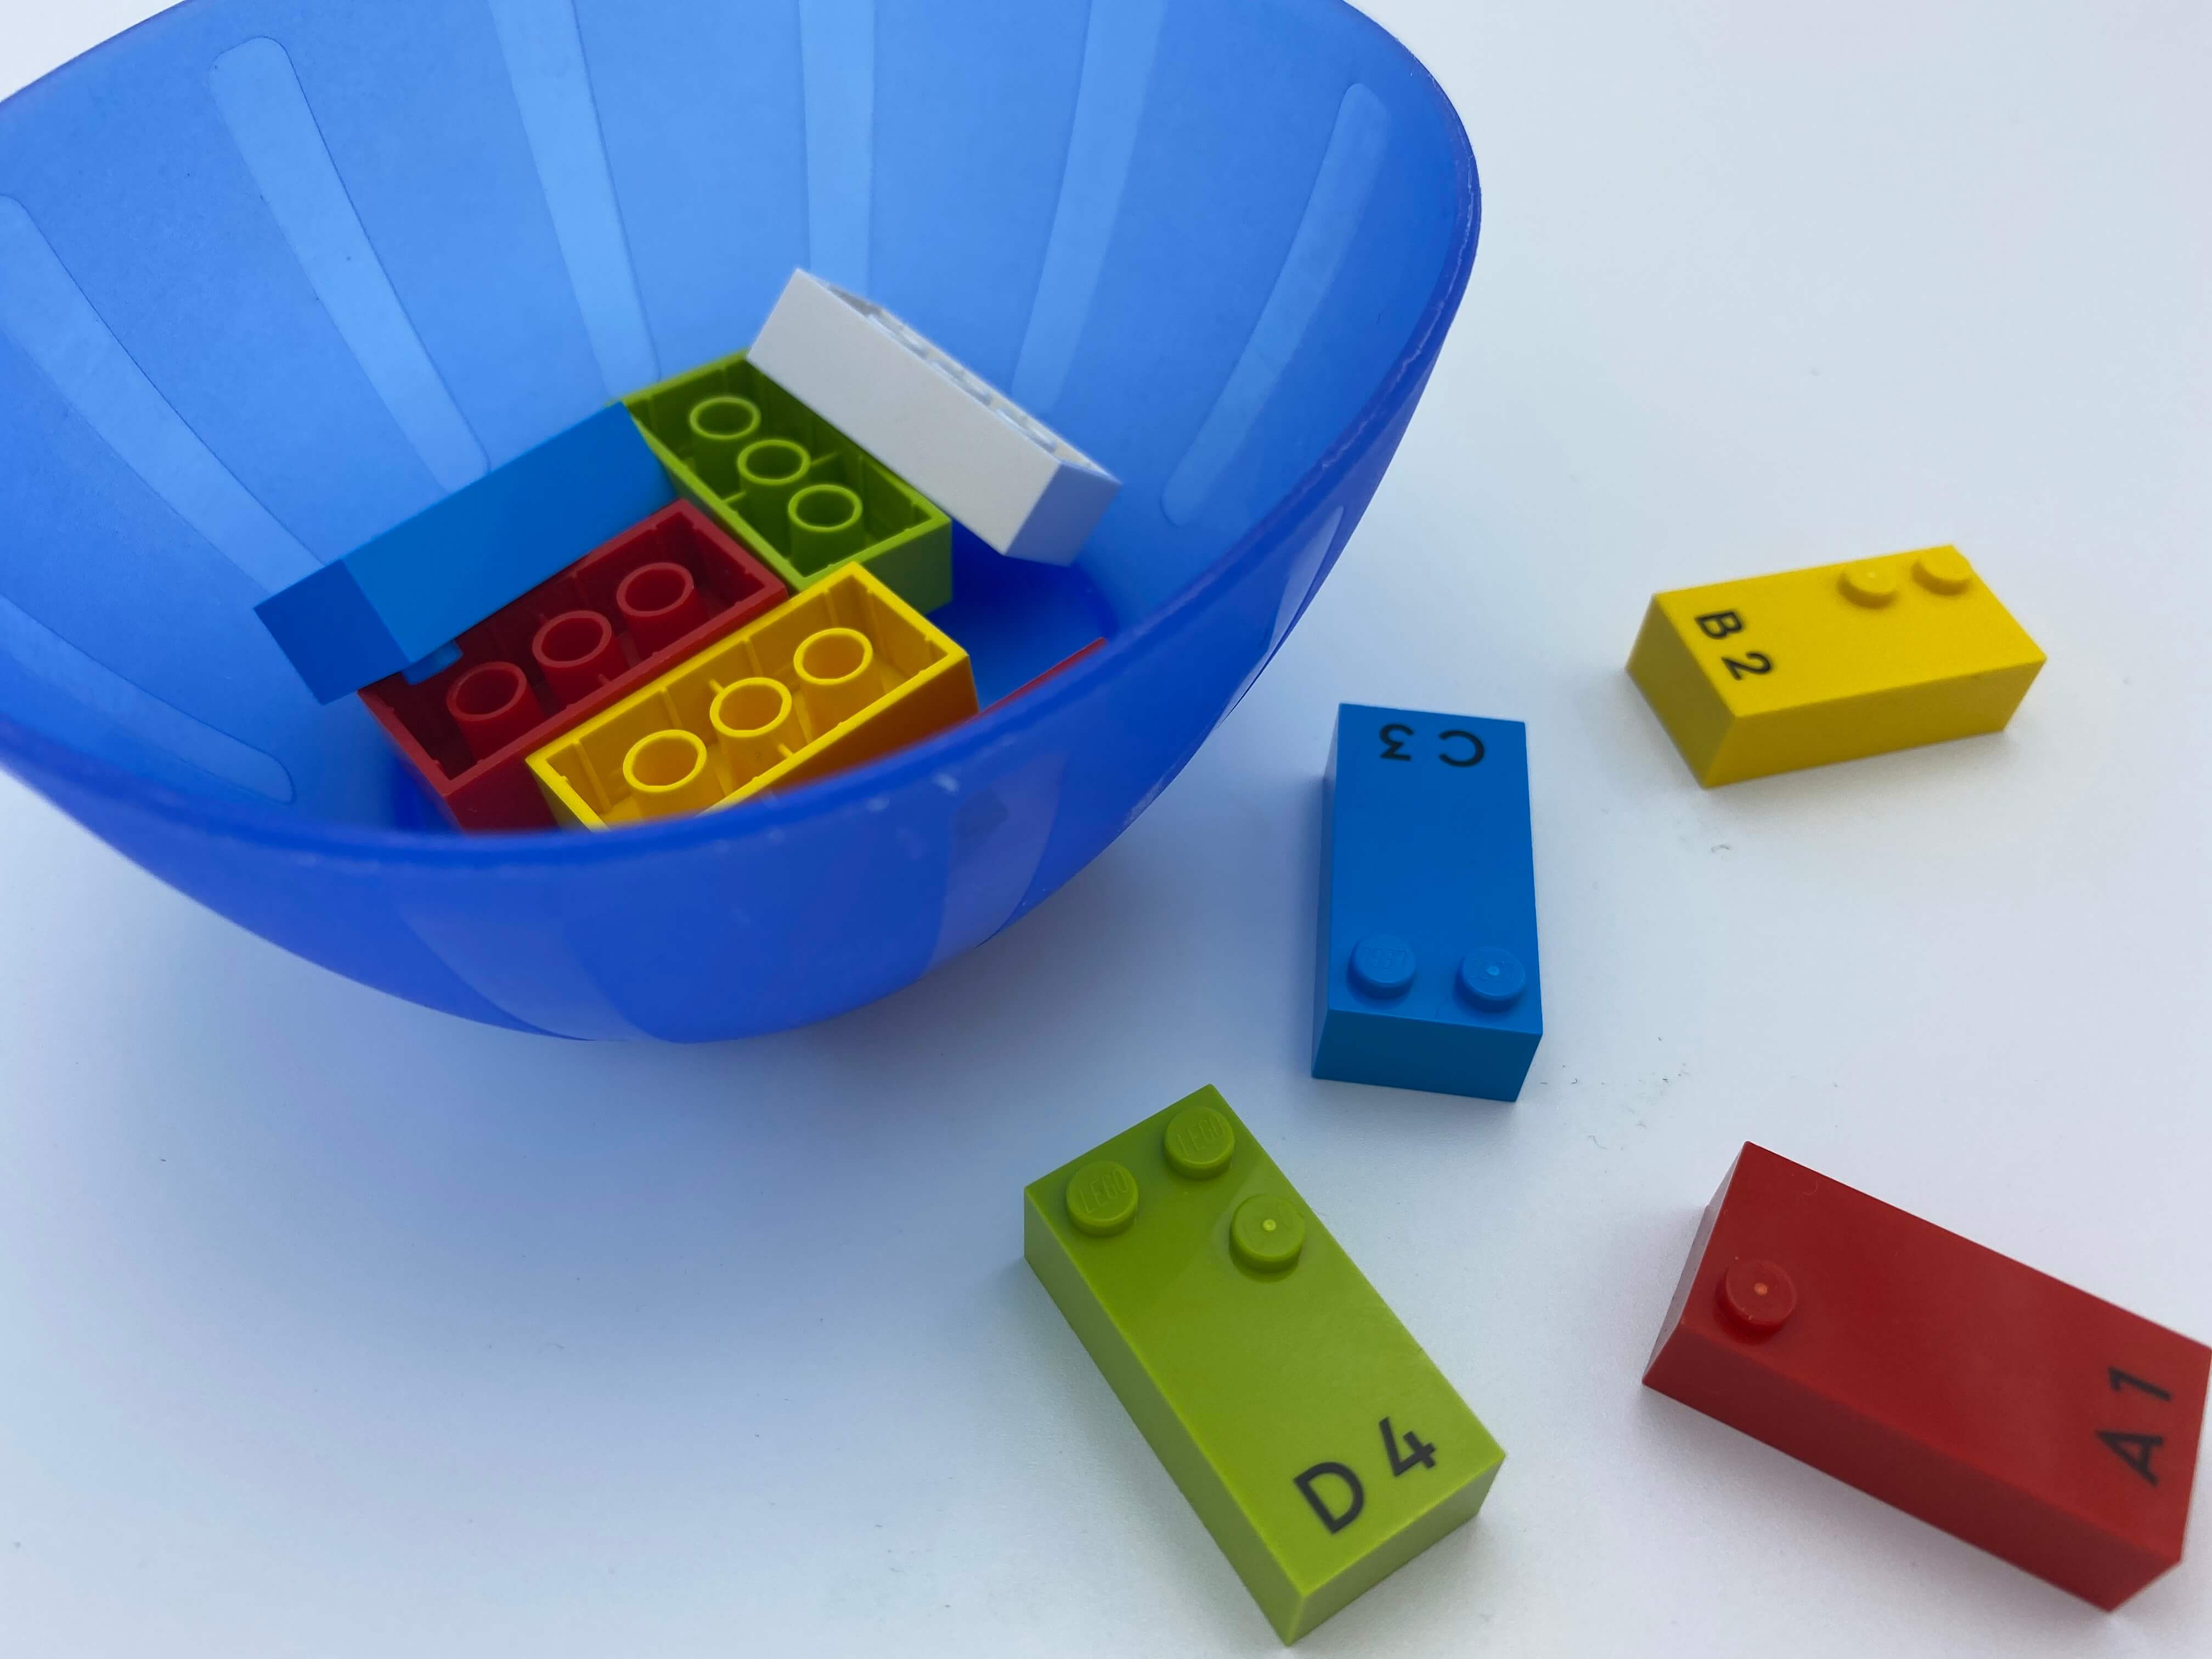 6 bricks upside-down in the bowl, 4 right-side up on the table.